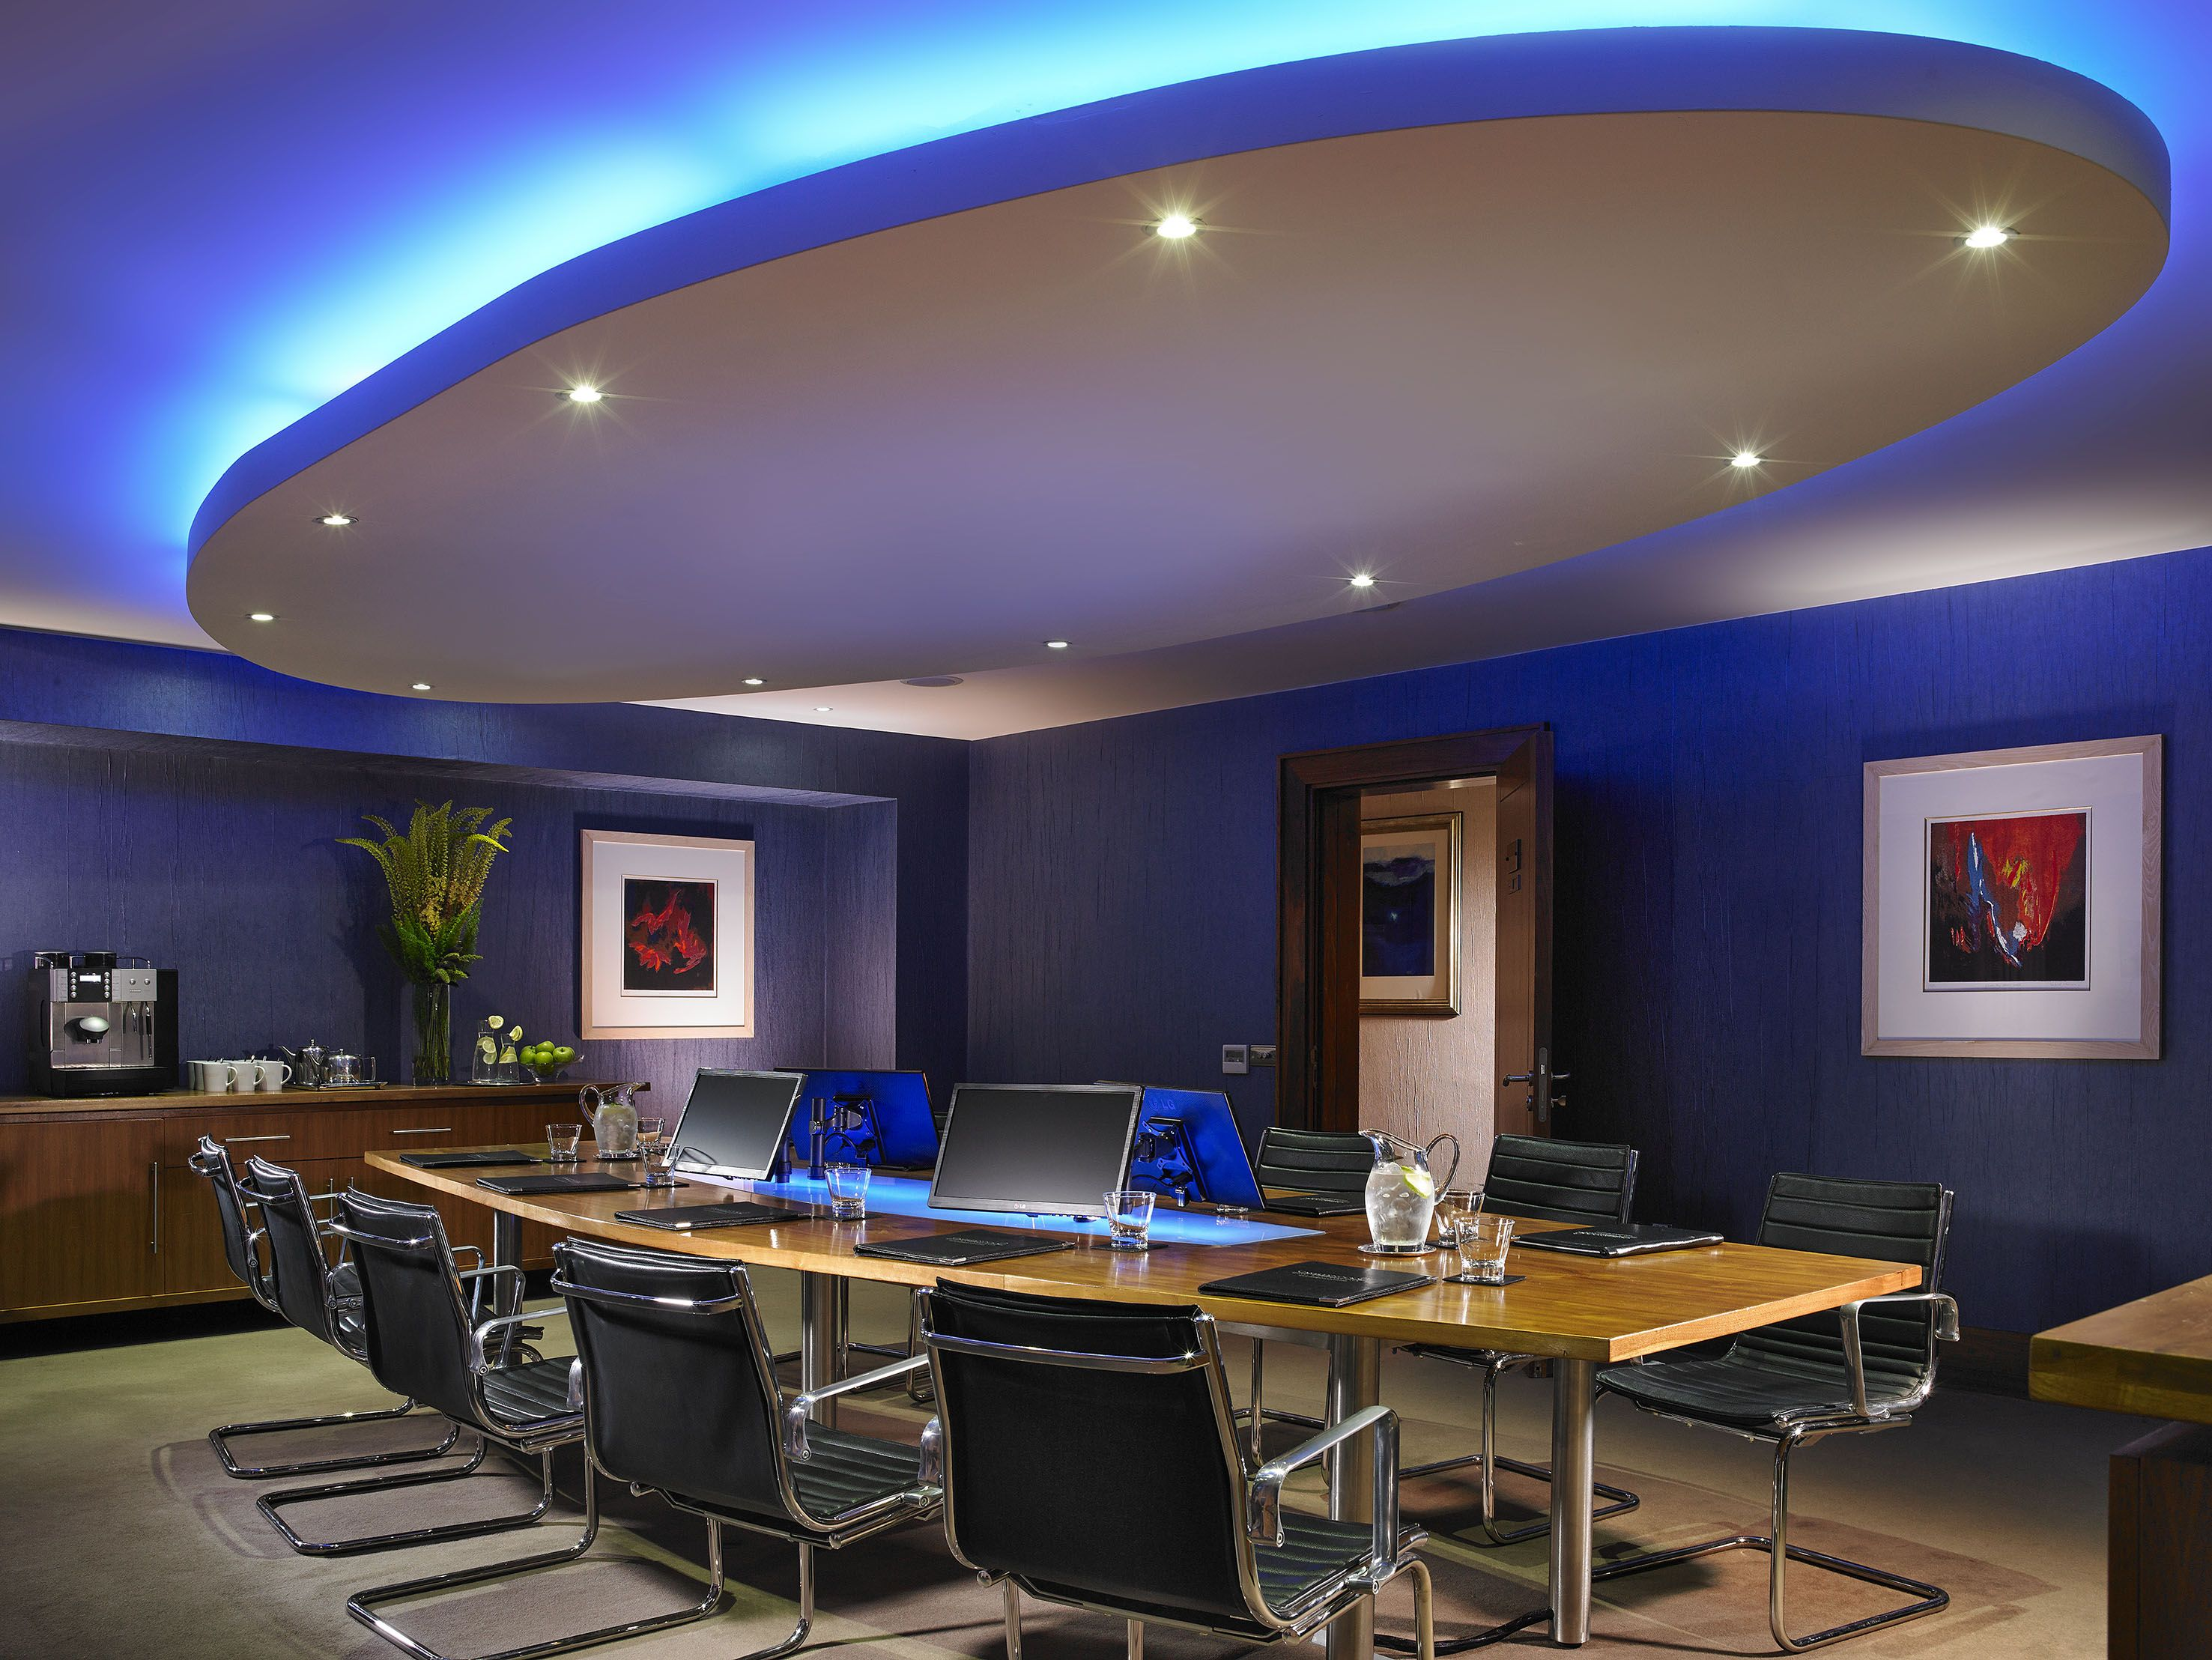 The Boardroom at Castleknock Hotel & Country Club, Dublin, Ireland